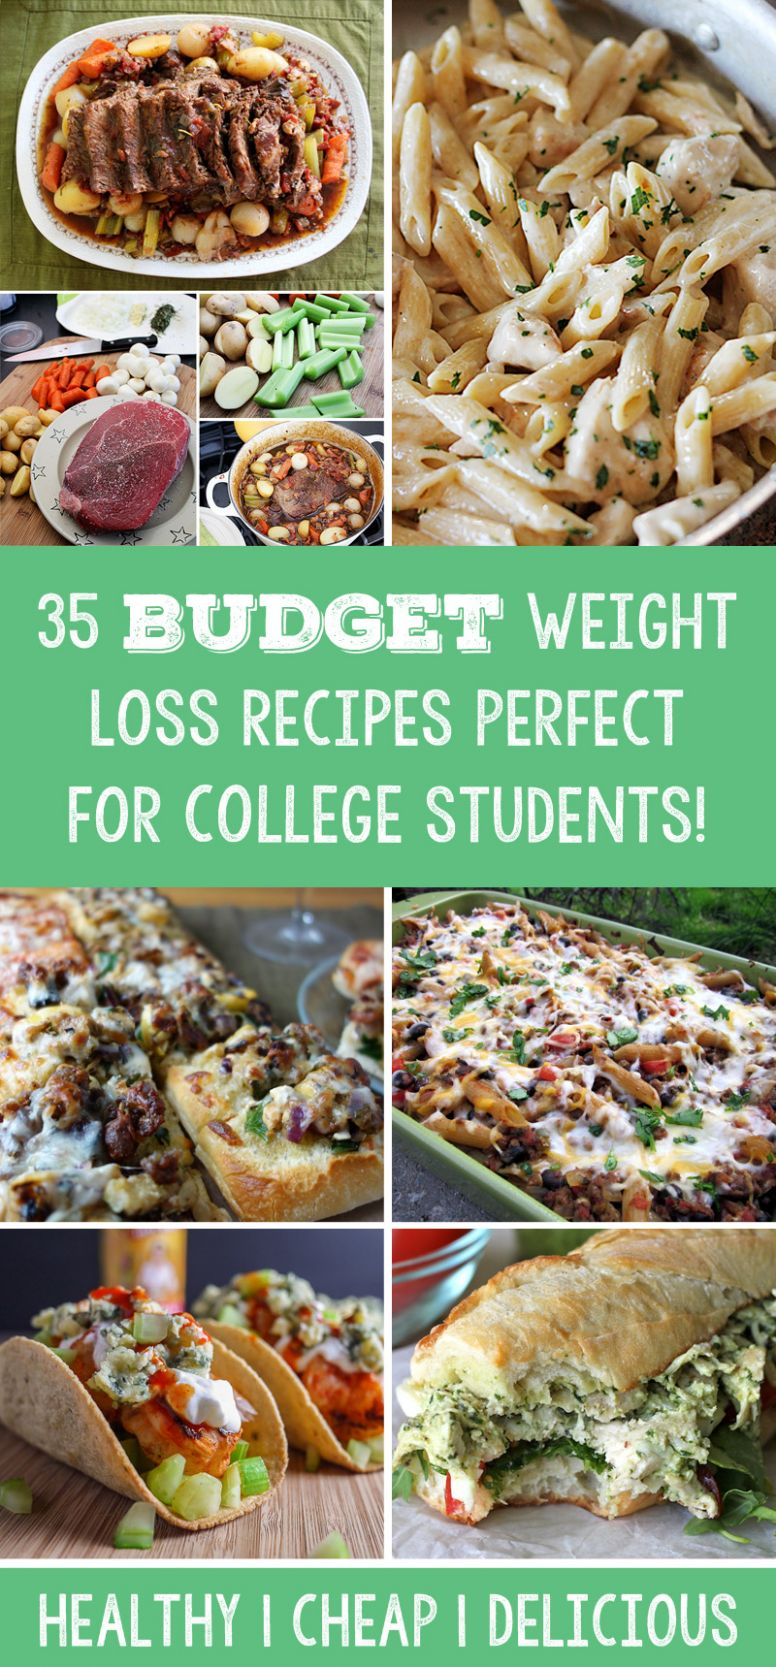 10 Budget Weight Loss Recipes Perfect For College Students ...